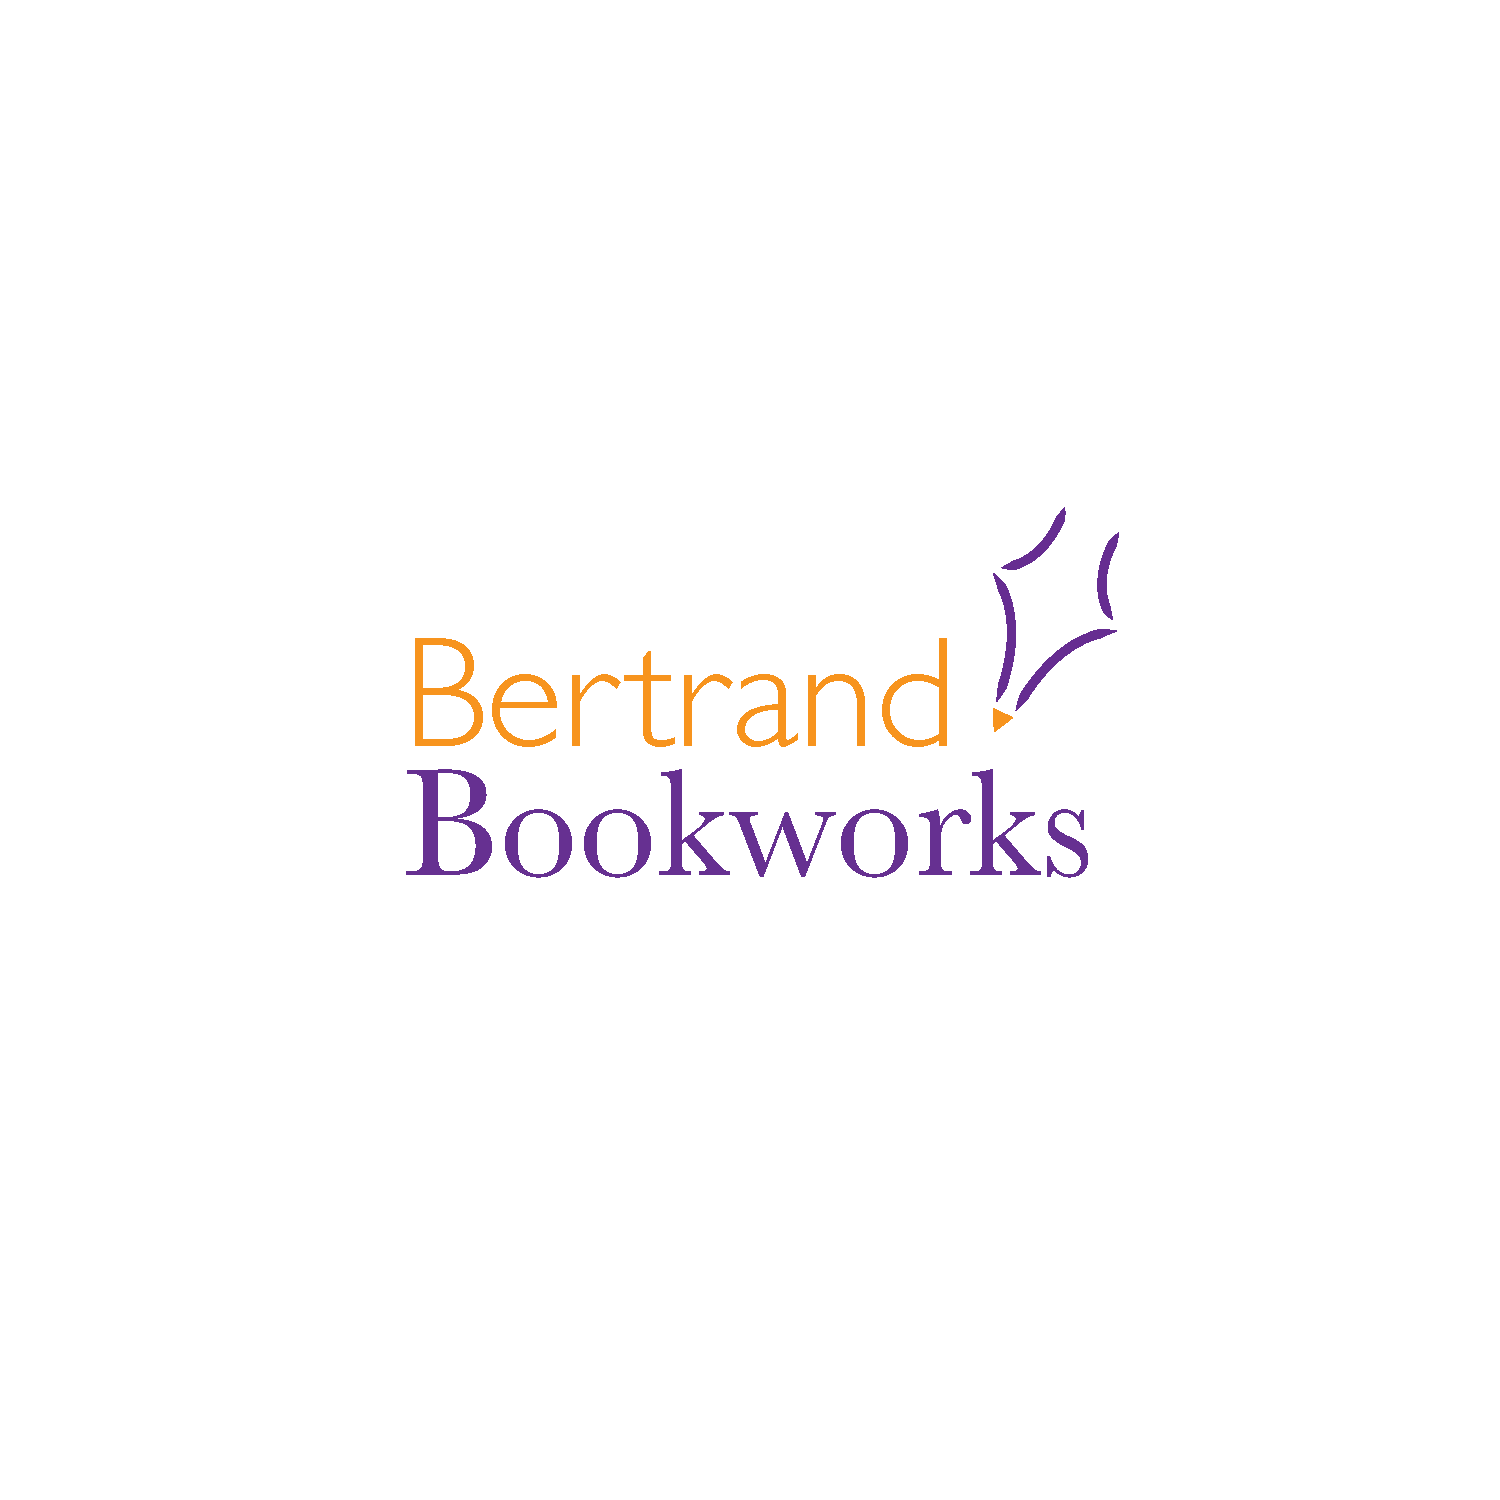 Bertrand Bookworks